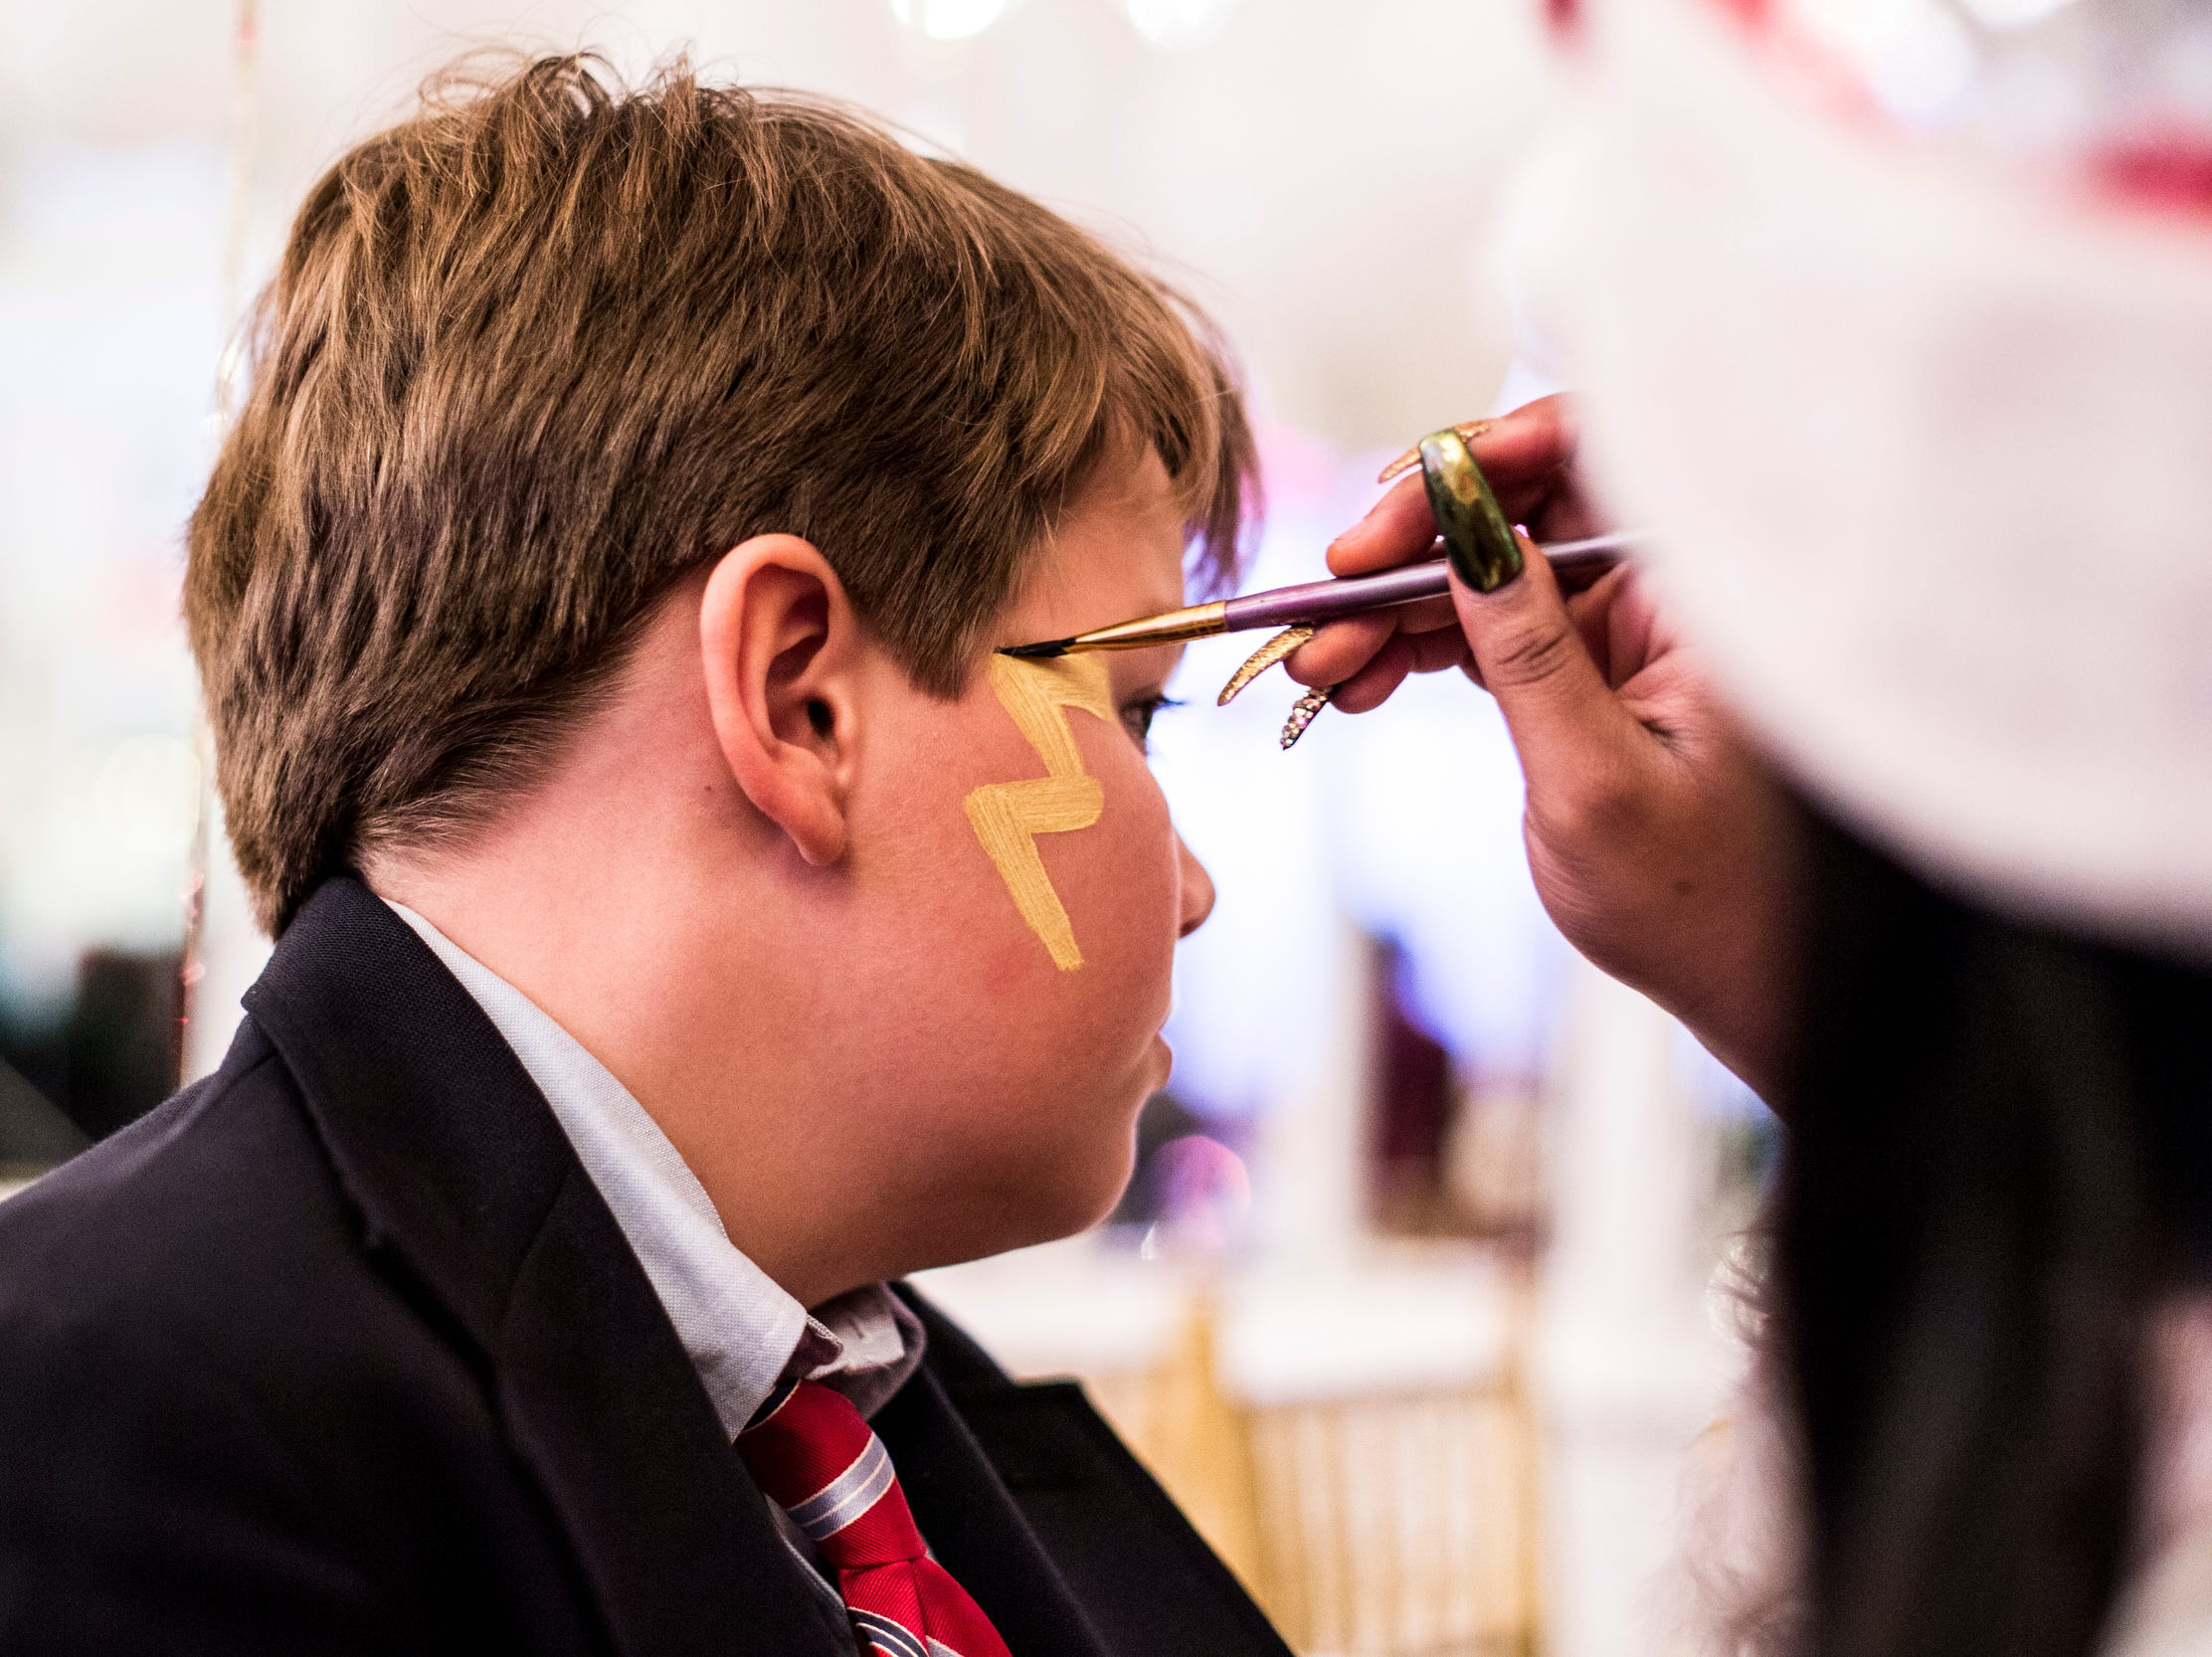 December 02 2018 - Garrett Johnson, 10, gets a lightning bolt painted on his face during the Memphis Jingle Bell Ball Holiday Cookie Party inside of the Continental Ballroom at the Peabody Hotel on Sunday. This was the 30th anniversary of the Jingle Bell Ball.